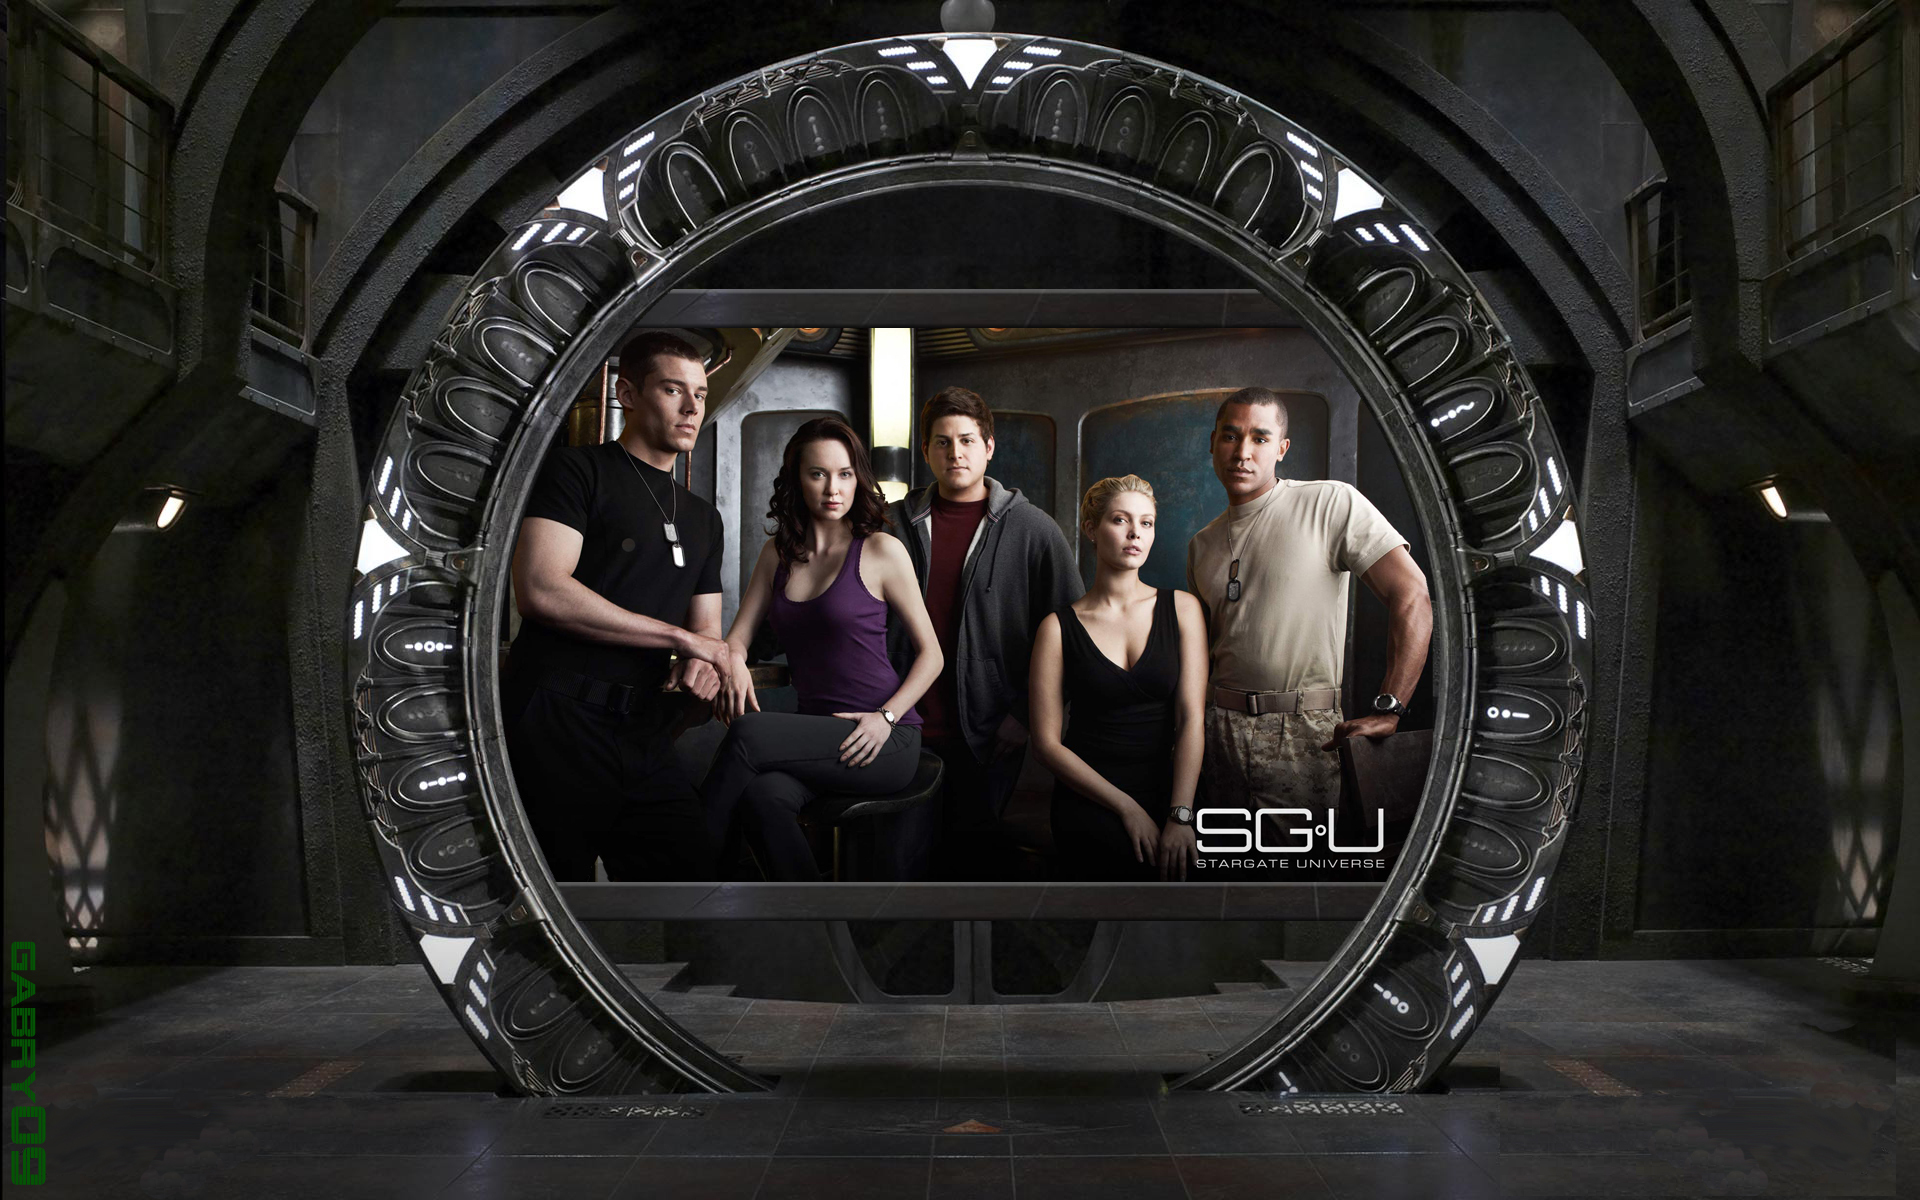 stargate wallpaper universe space - photo #3